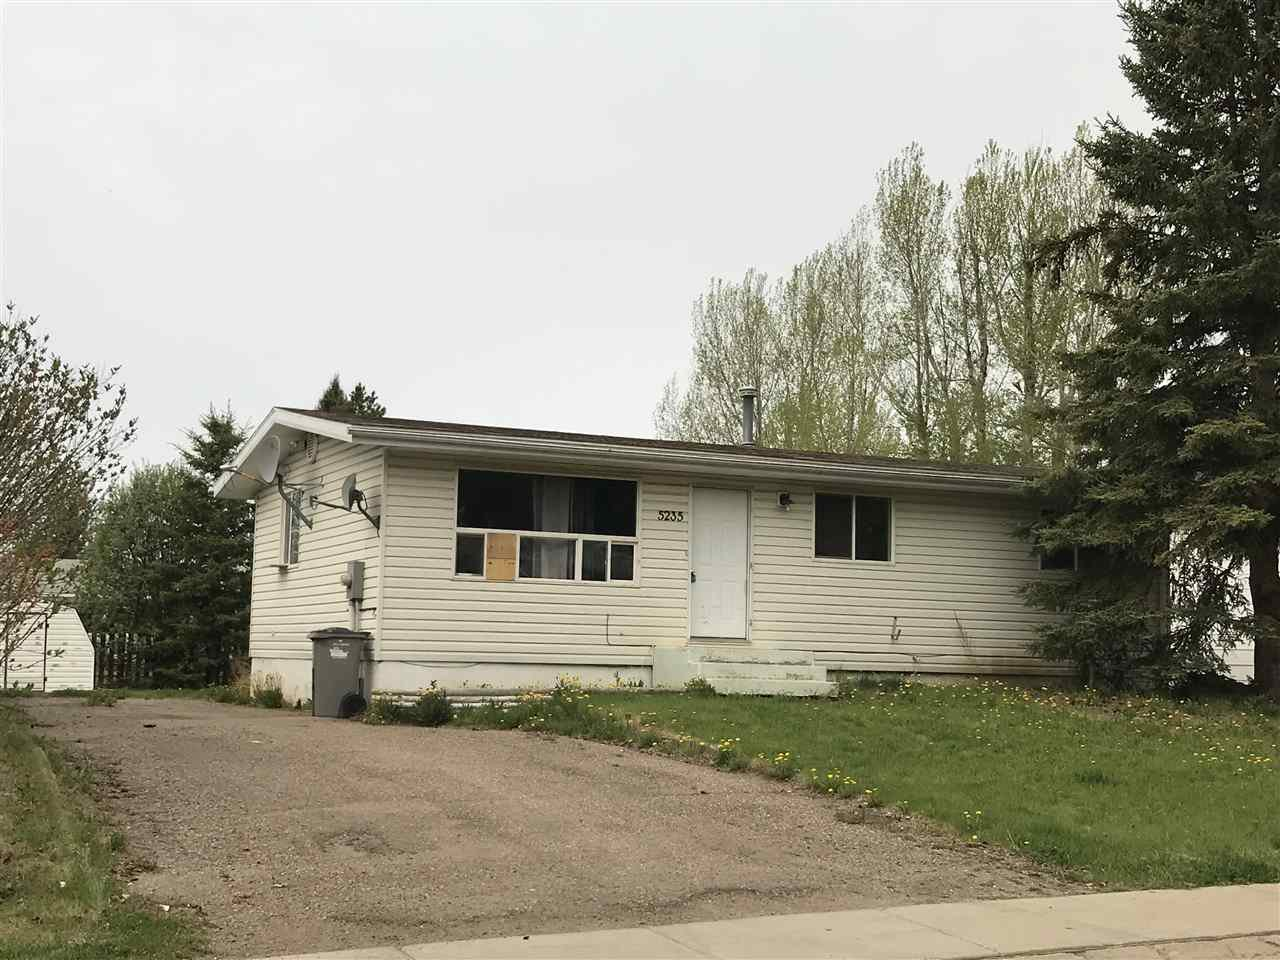 """Main Photo: 5235 TAMARACK Crescent in Fort Nelson: Fort Nelson -Town House for sale in """"EAST SUB"""" (Fort Nelson (Zone 64))  : MLS®# R2375976"""